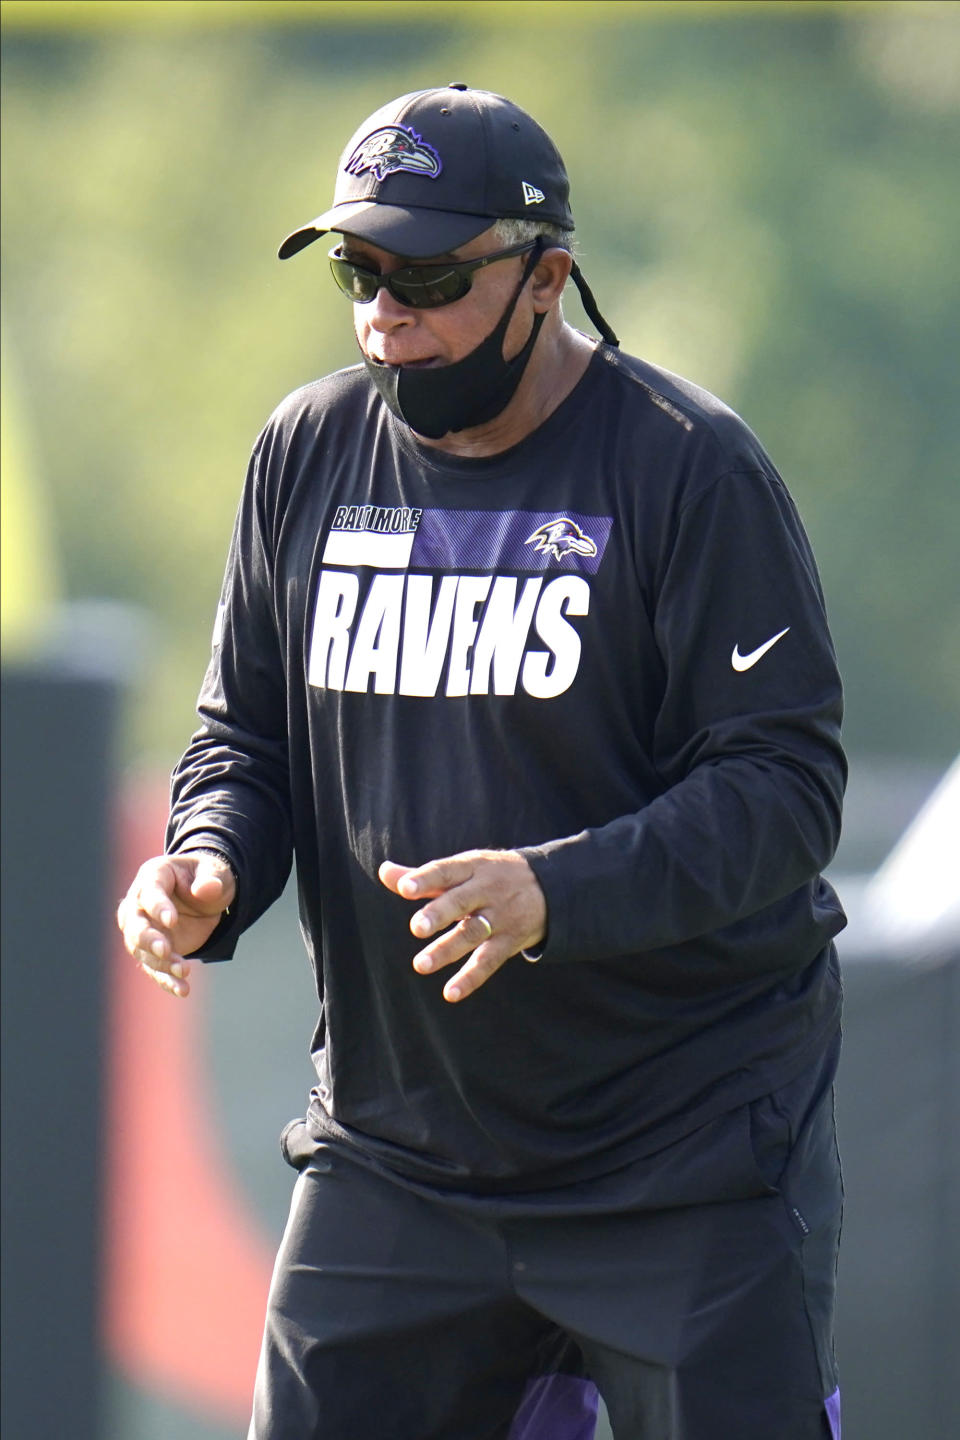 Baltimore Ravens assistant head coach David Culley works with wide receivers during an NFL football training camp practice, Tuesday, Aug. 25, 2020, in Owings Mills, Md. (AP Photo/Julio Cortez)